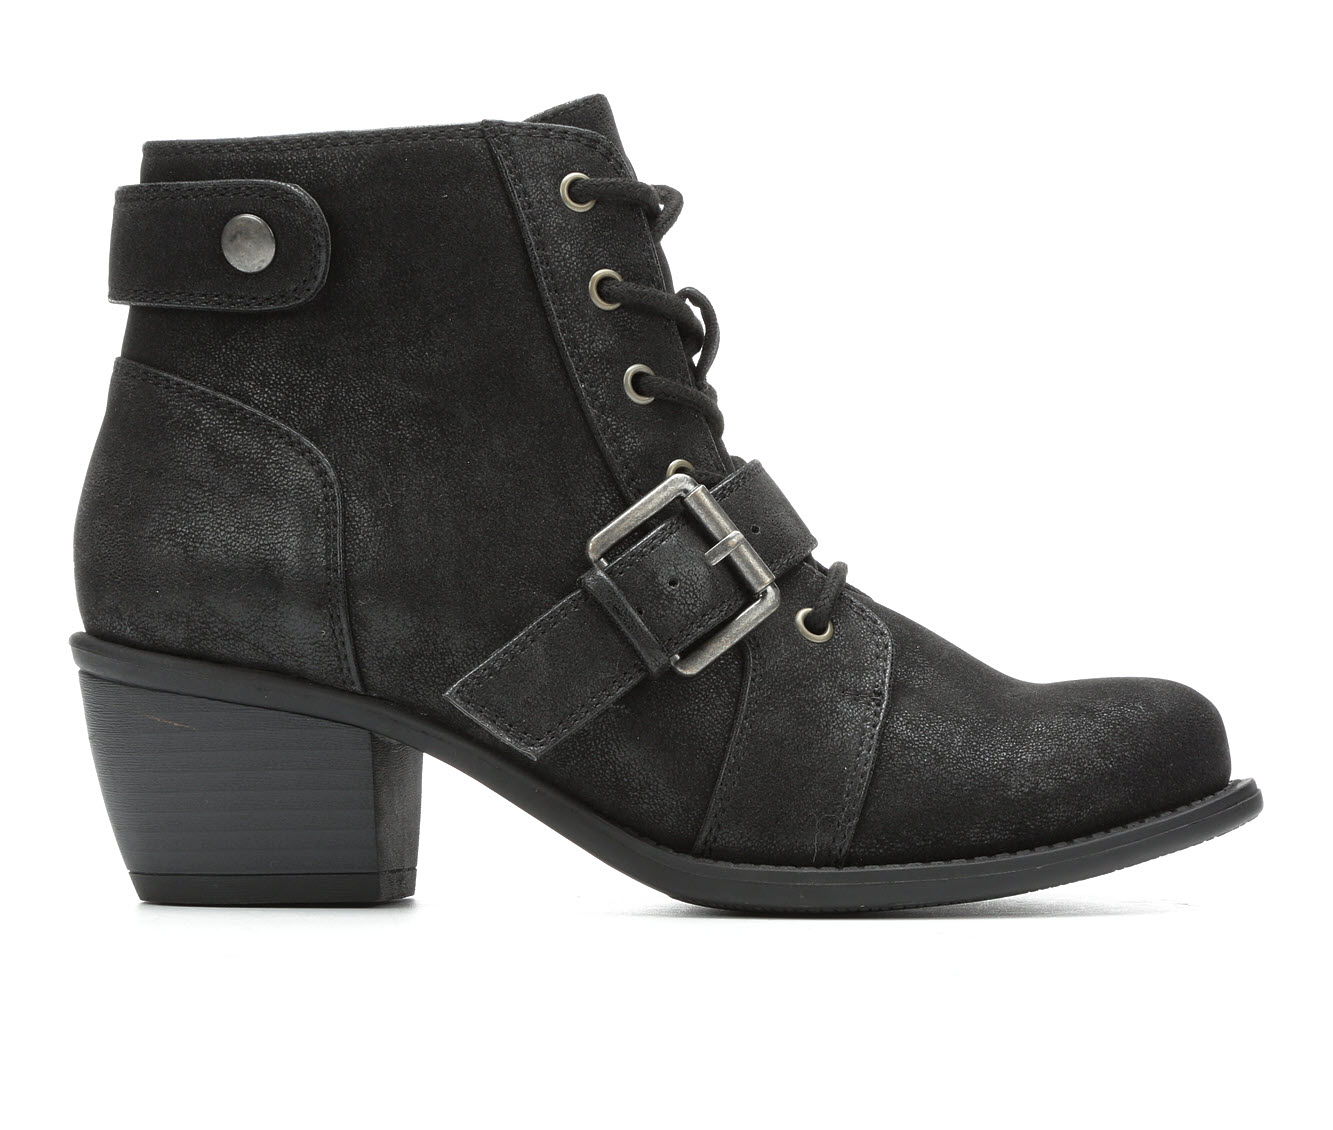 Axxiom Carly Women's Boot (Black Faux Leather)